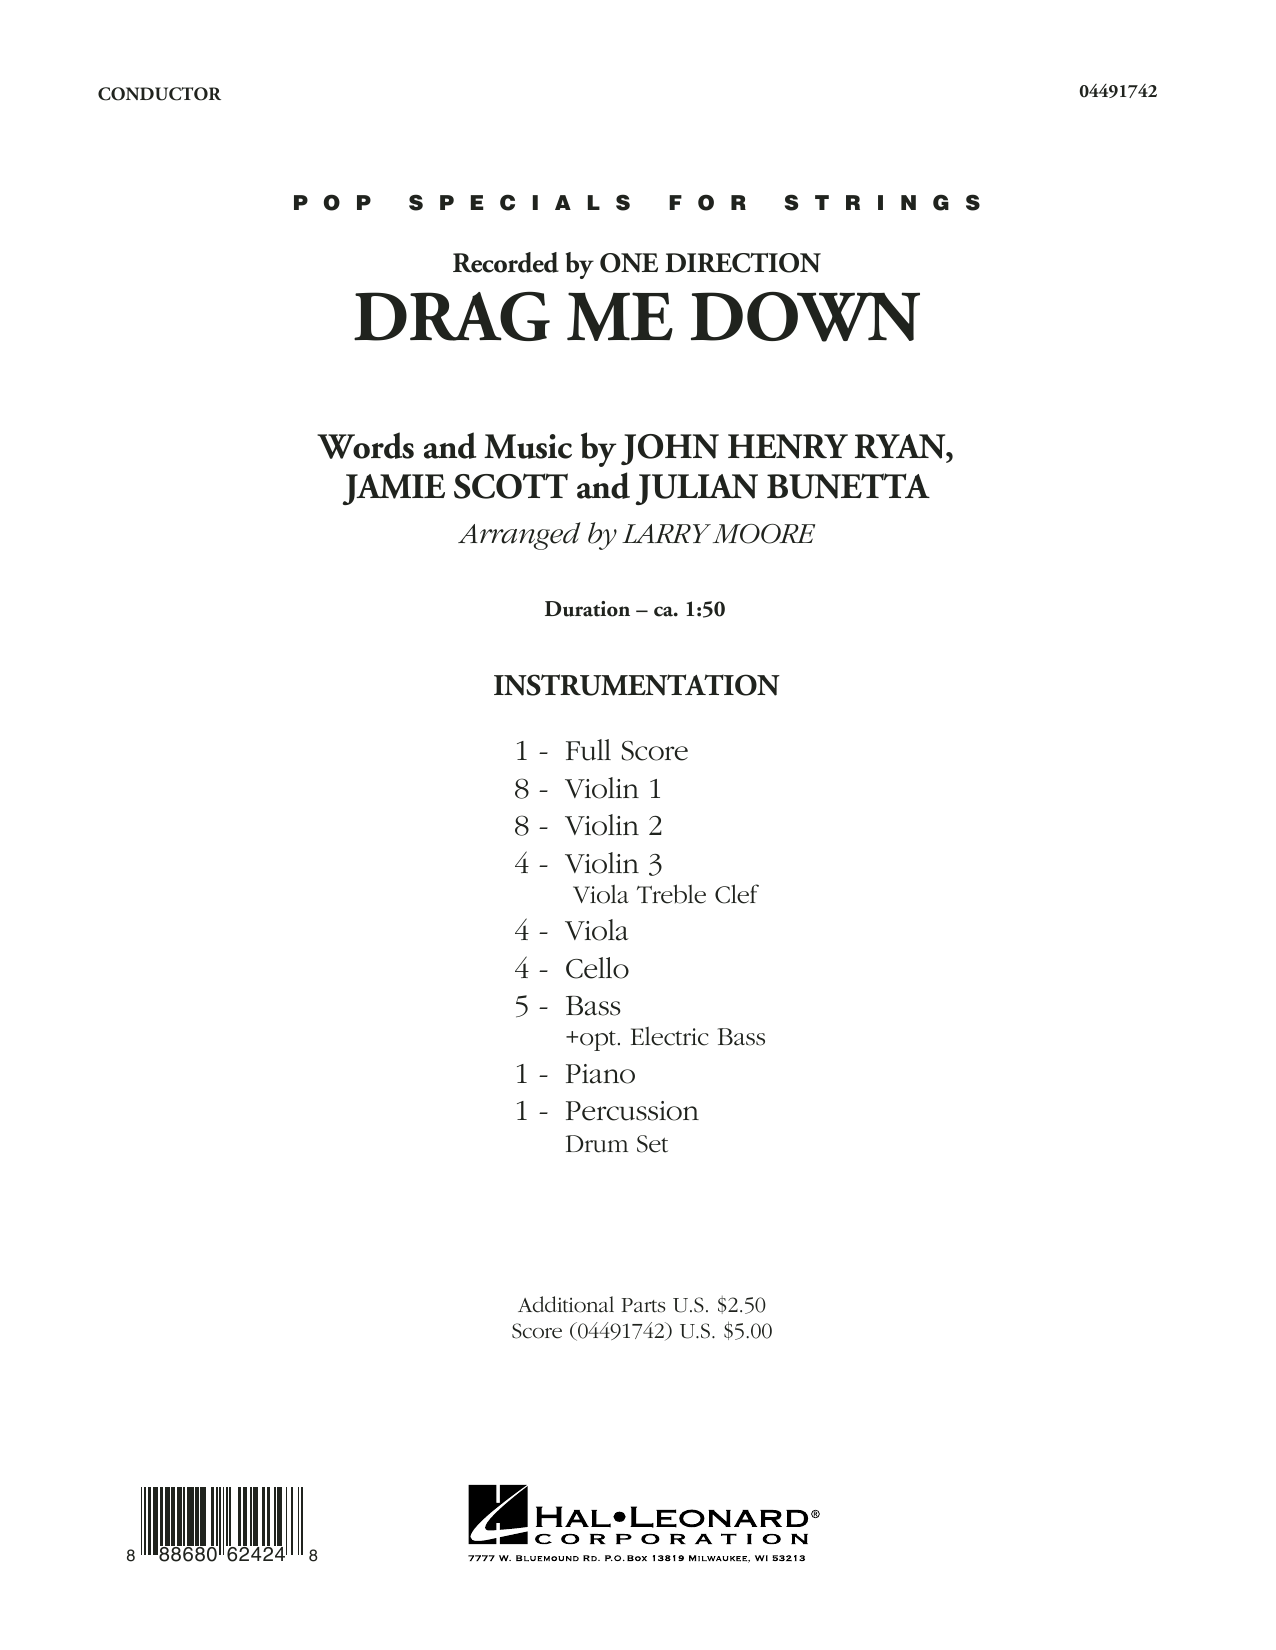 One Direction - Drag Me Down - Conductor Score (Full Score)